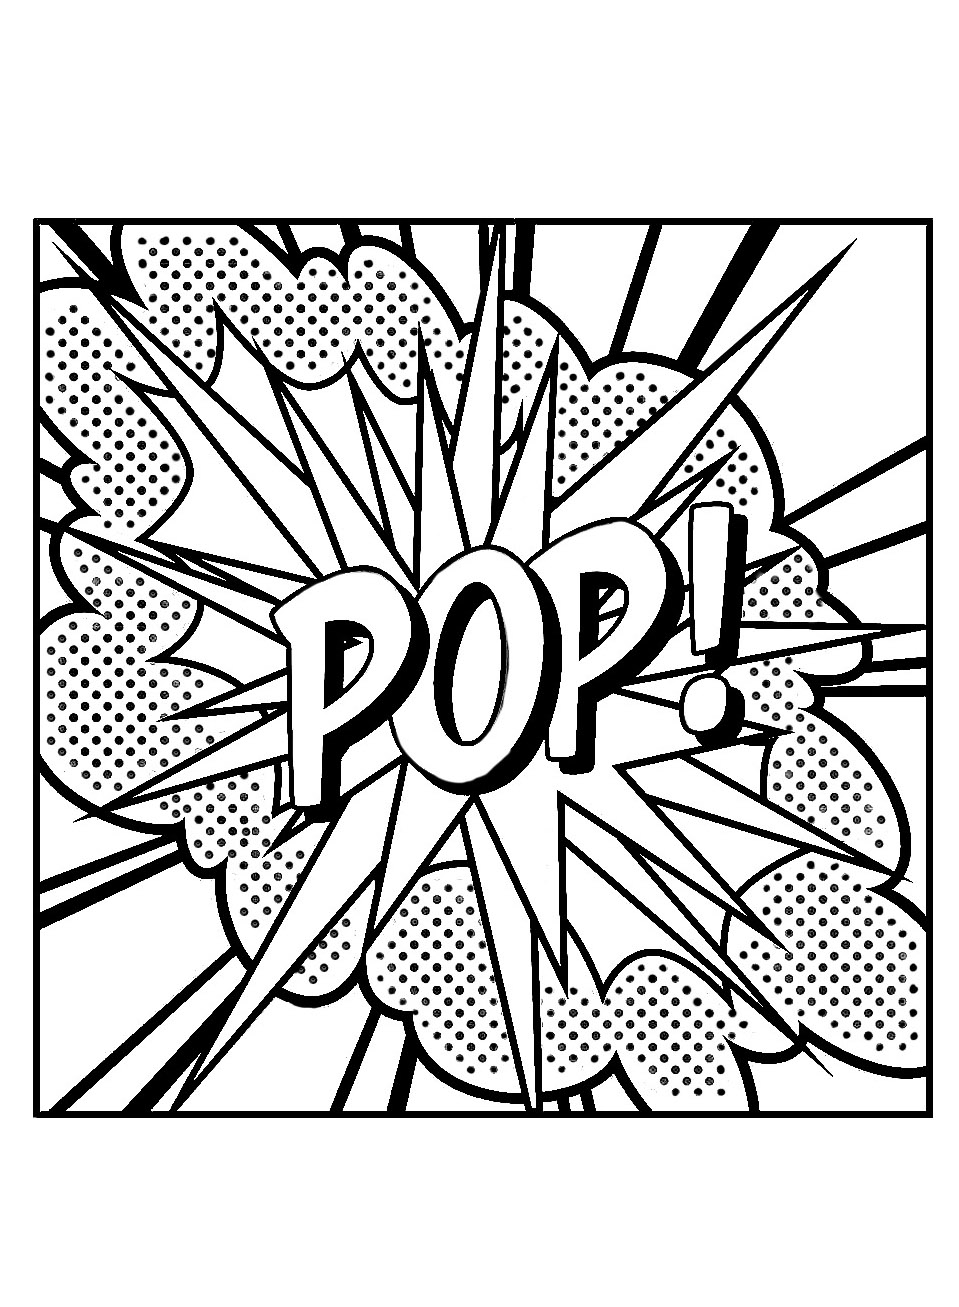 959x1307 Pop Roy Lichtenstein Pop Art